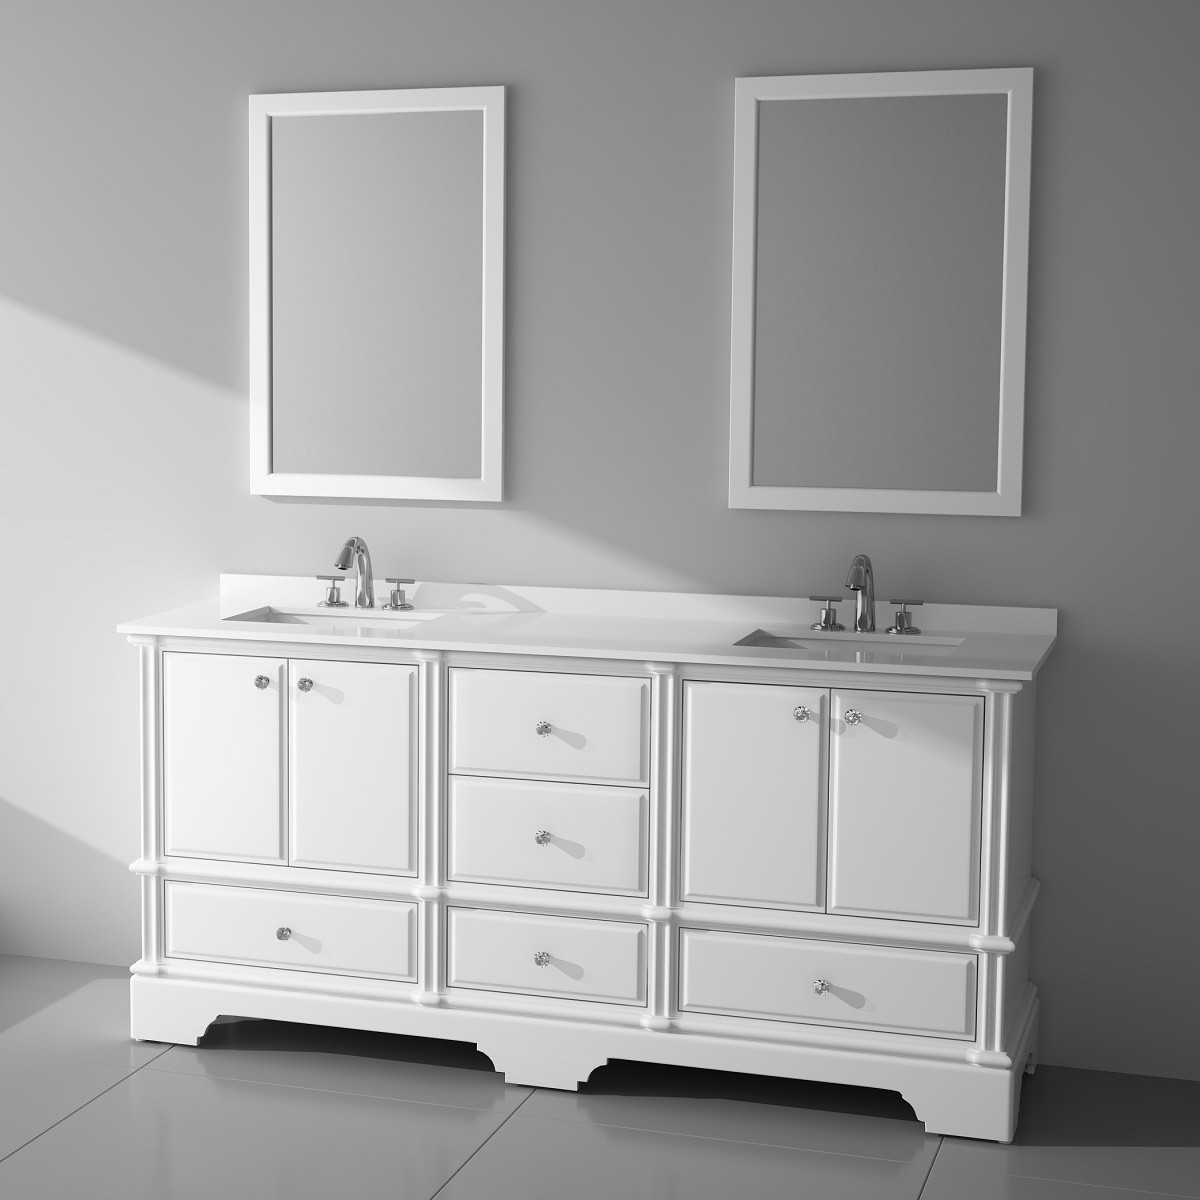 sink display in bathroom cabinet grey double best corner black vanity